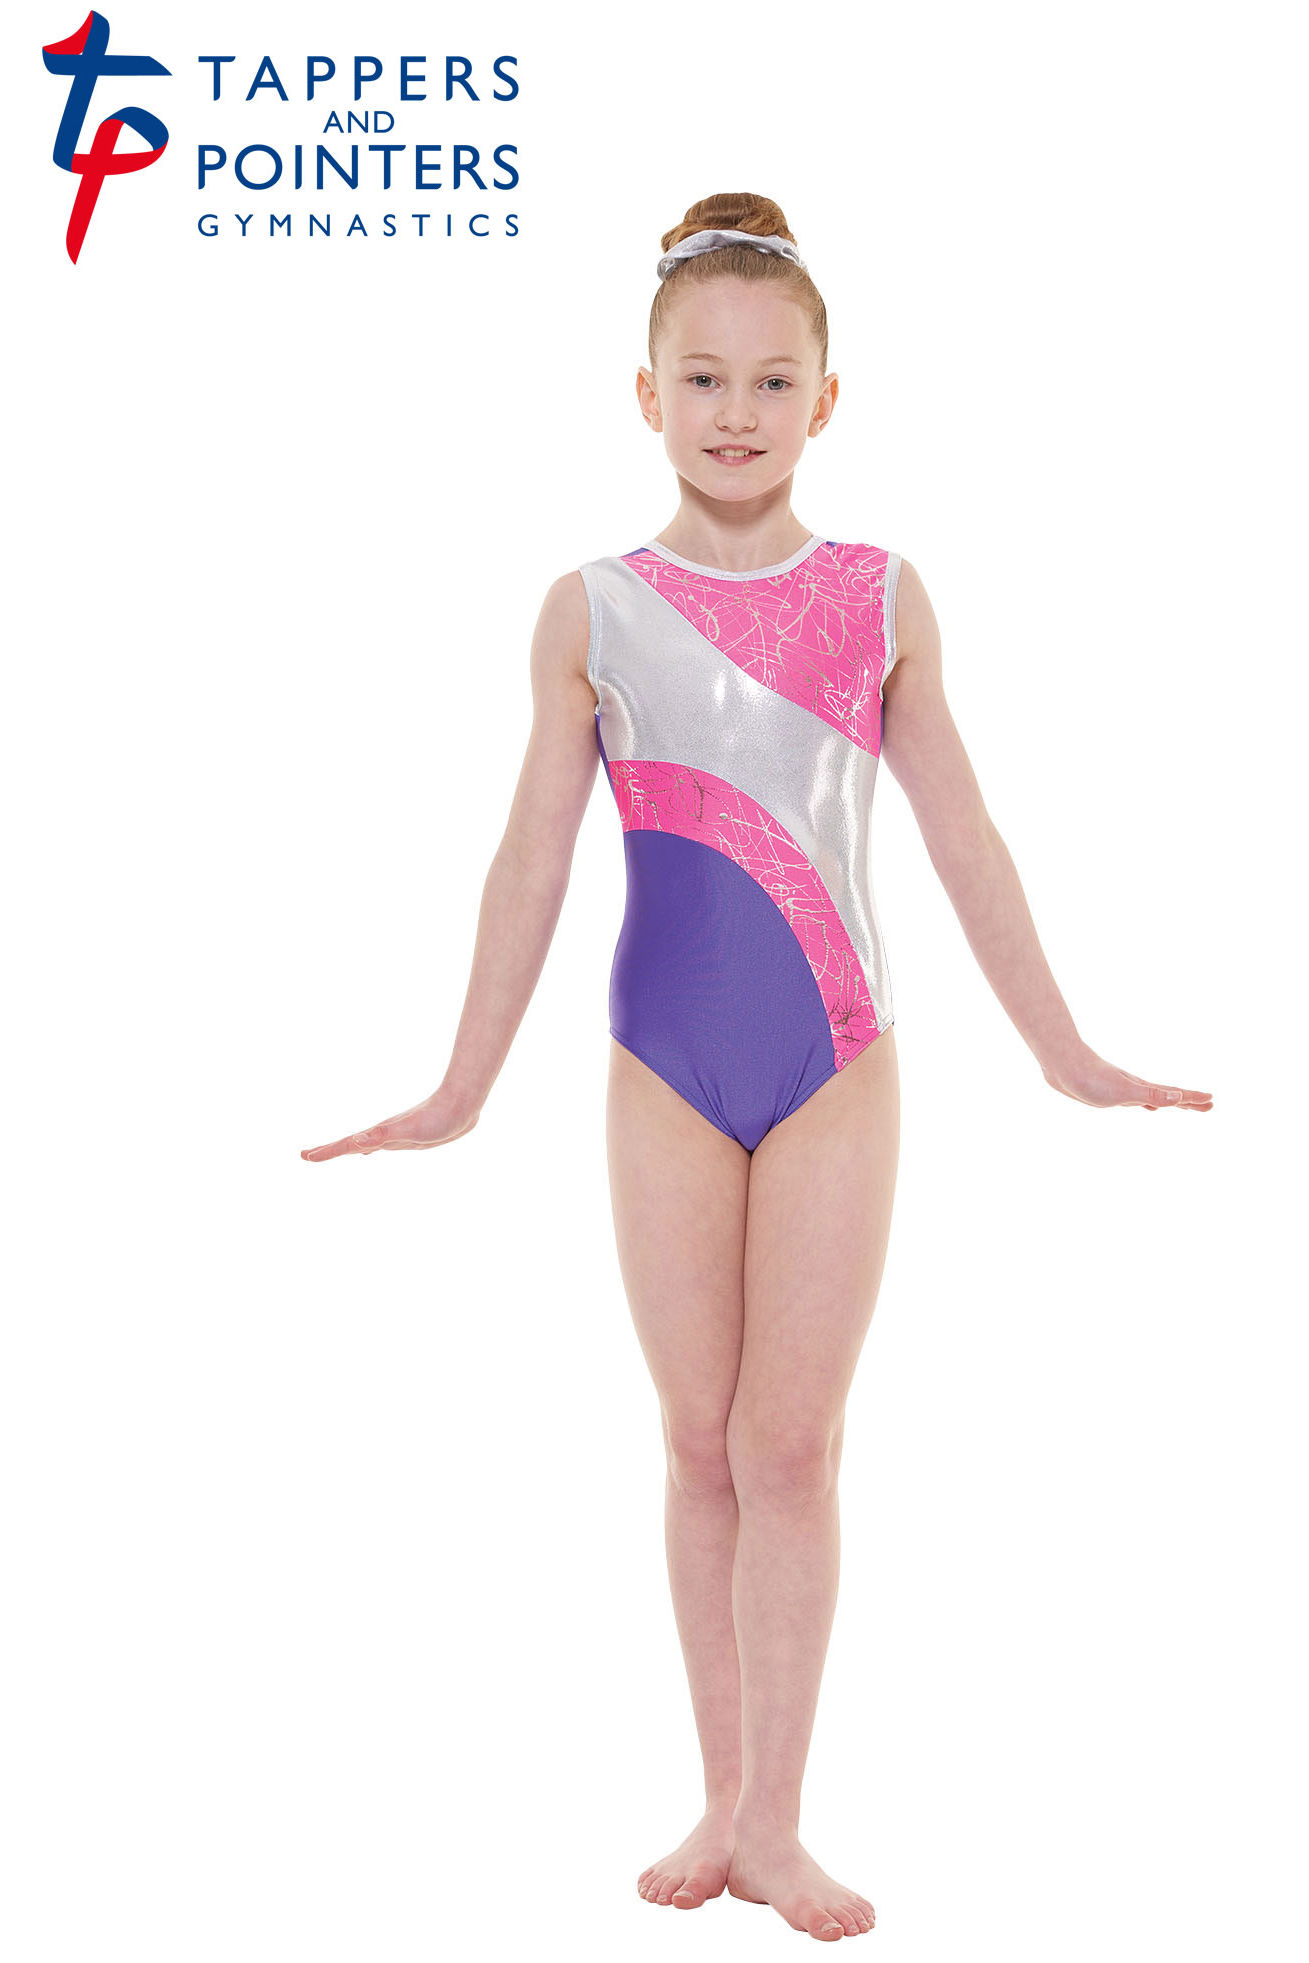 3f7dabe26 Tappers and Pointers Childrens Sleeveless Gymnastics Leotard GYM 37 ...